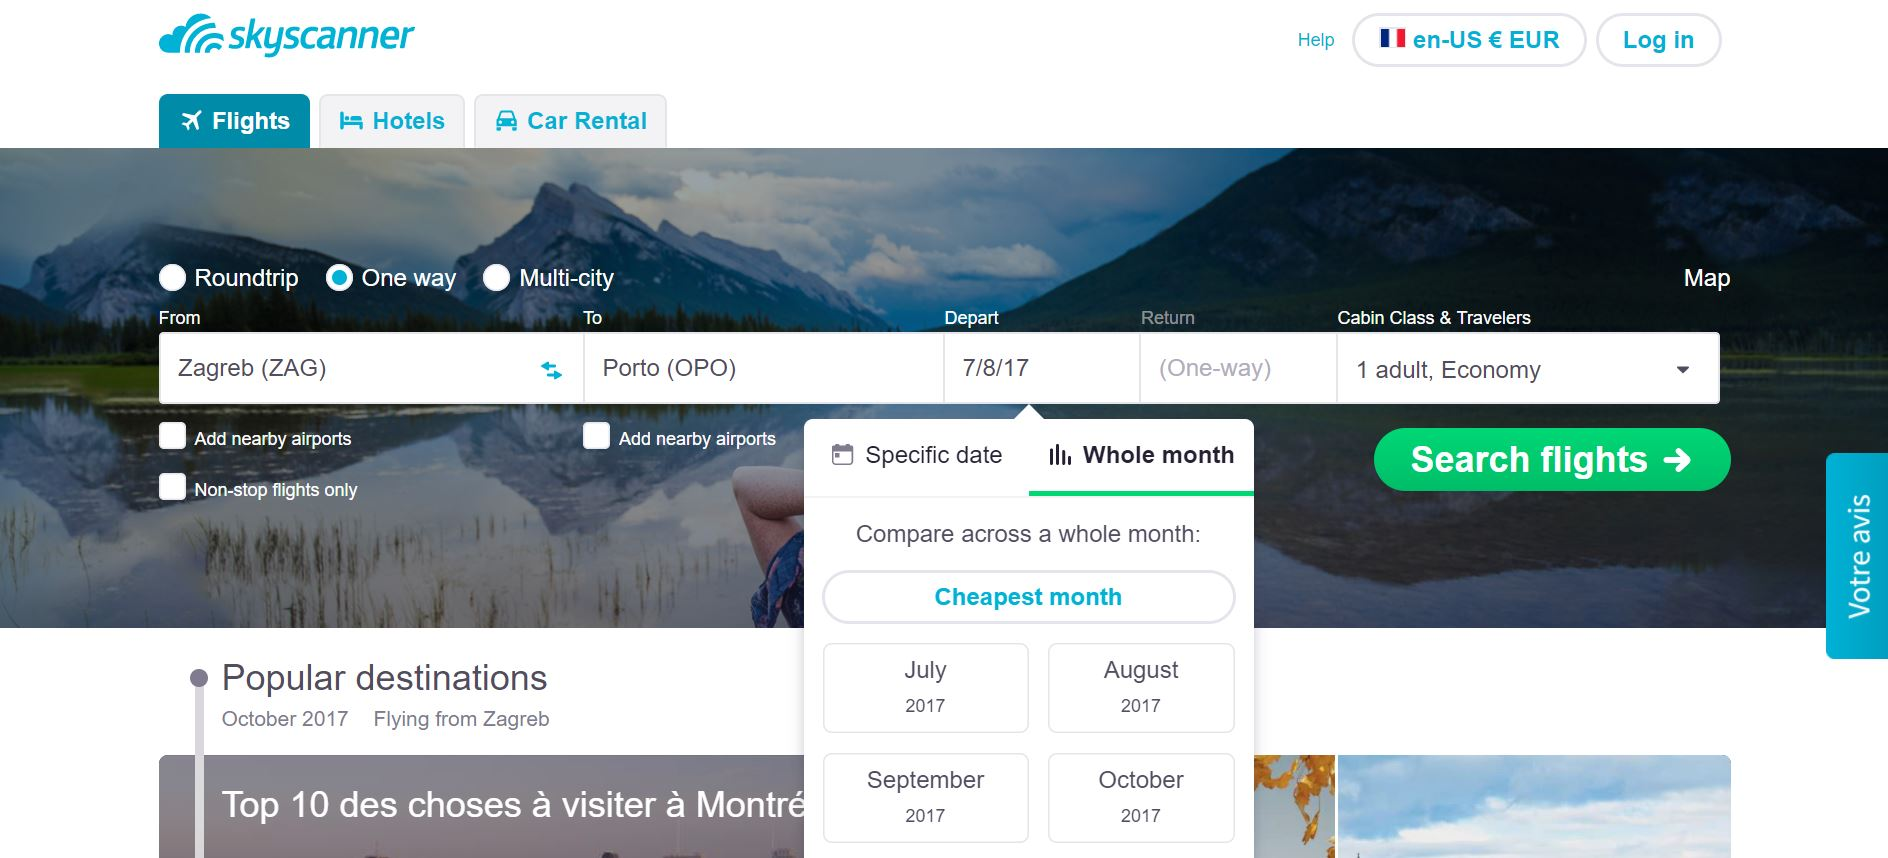 skyscanner cheapest month whole month